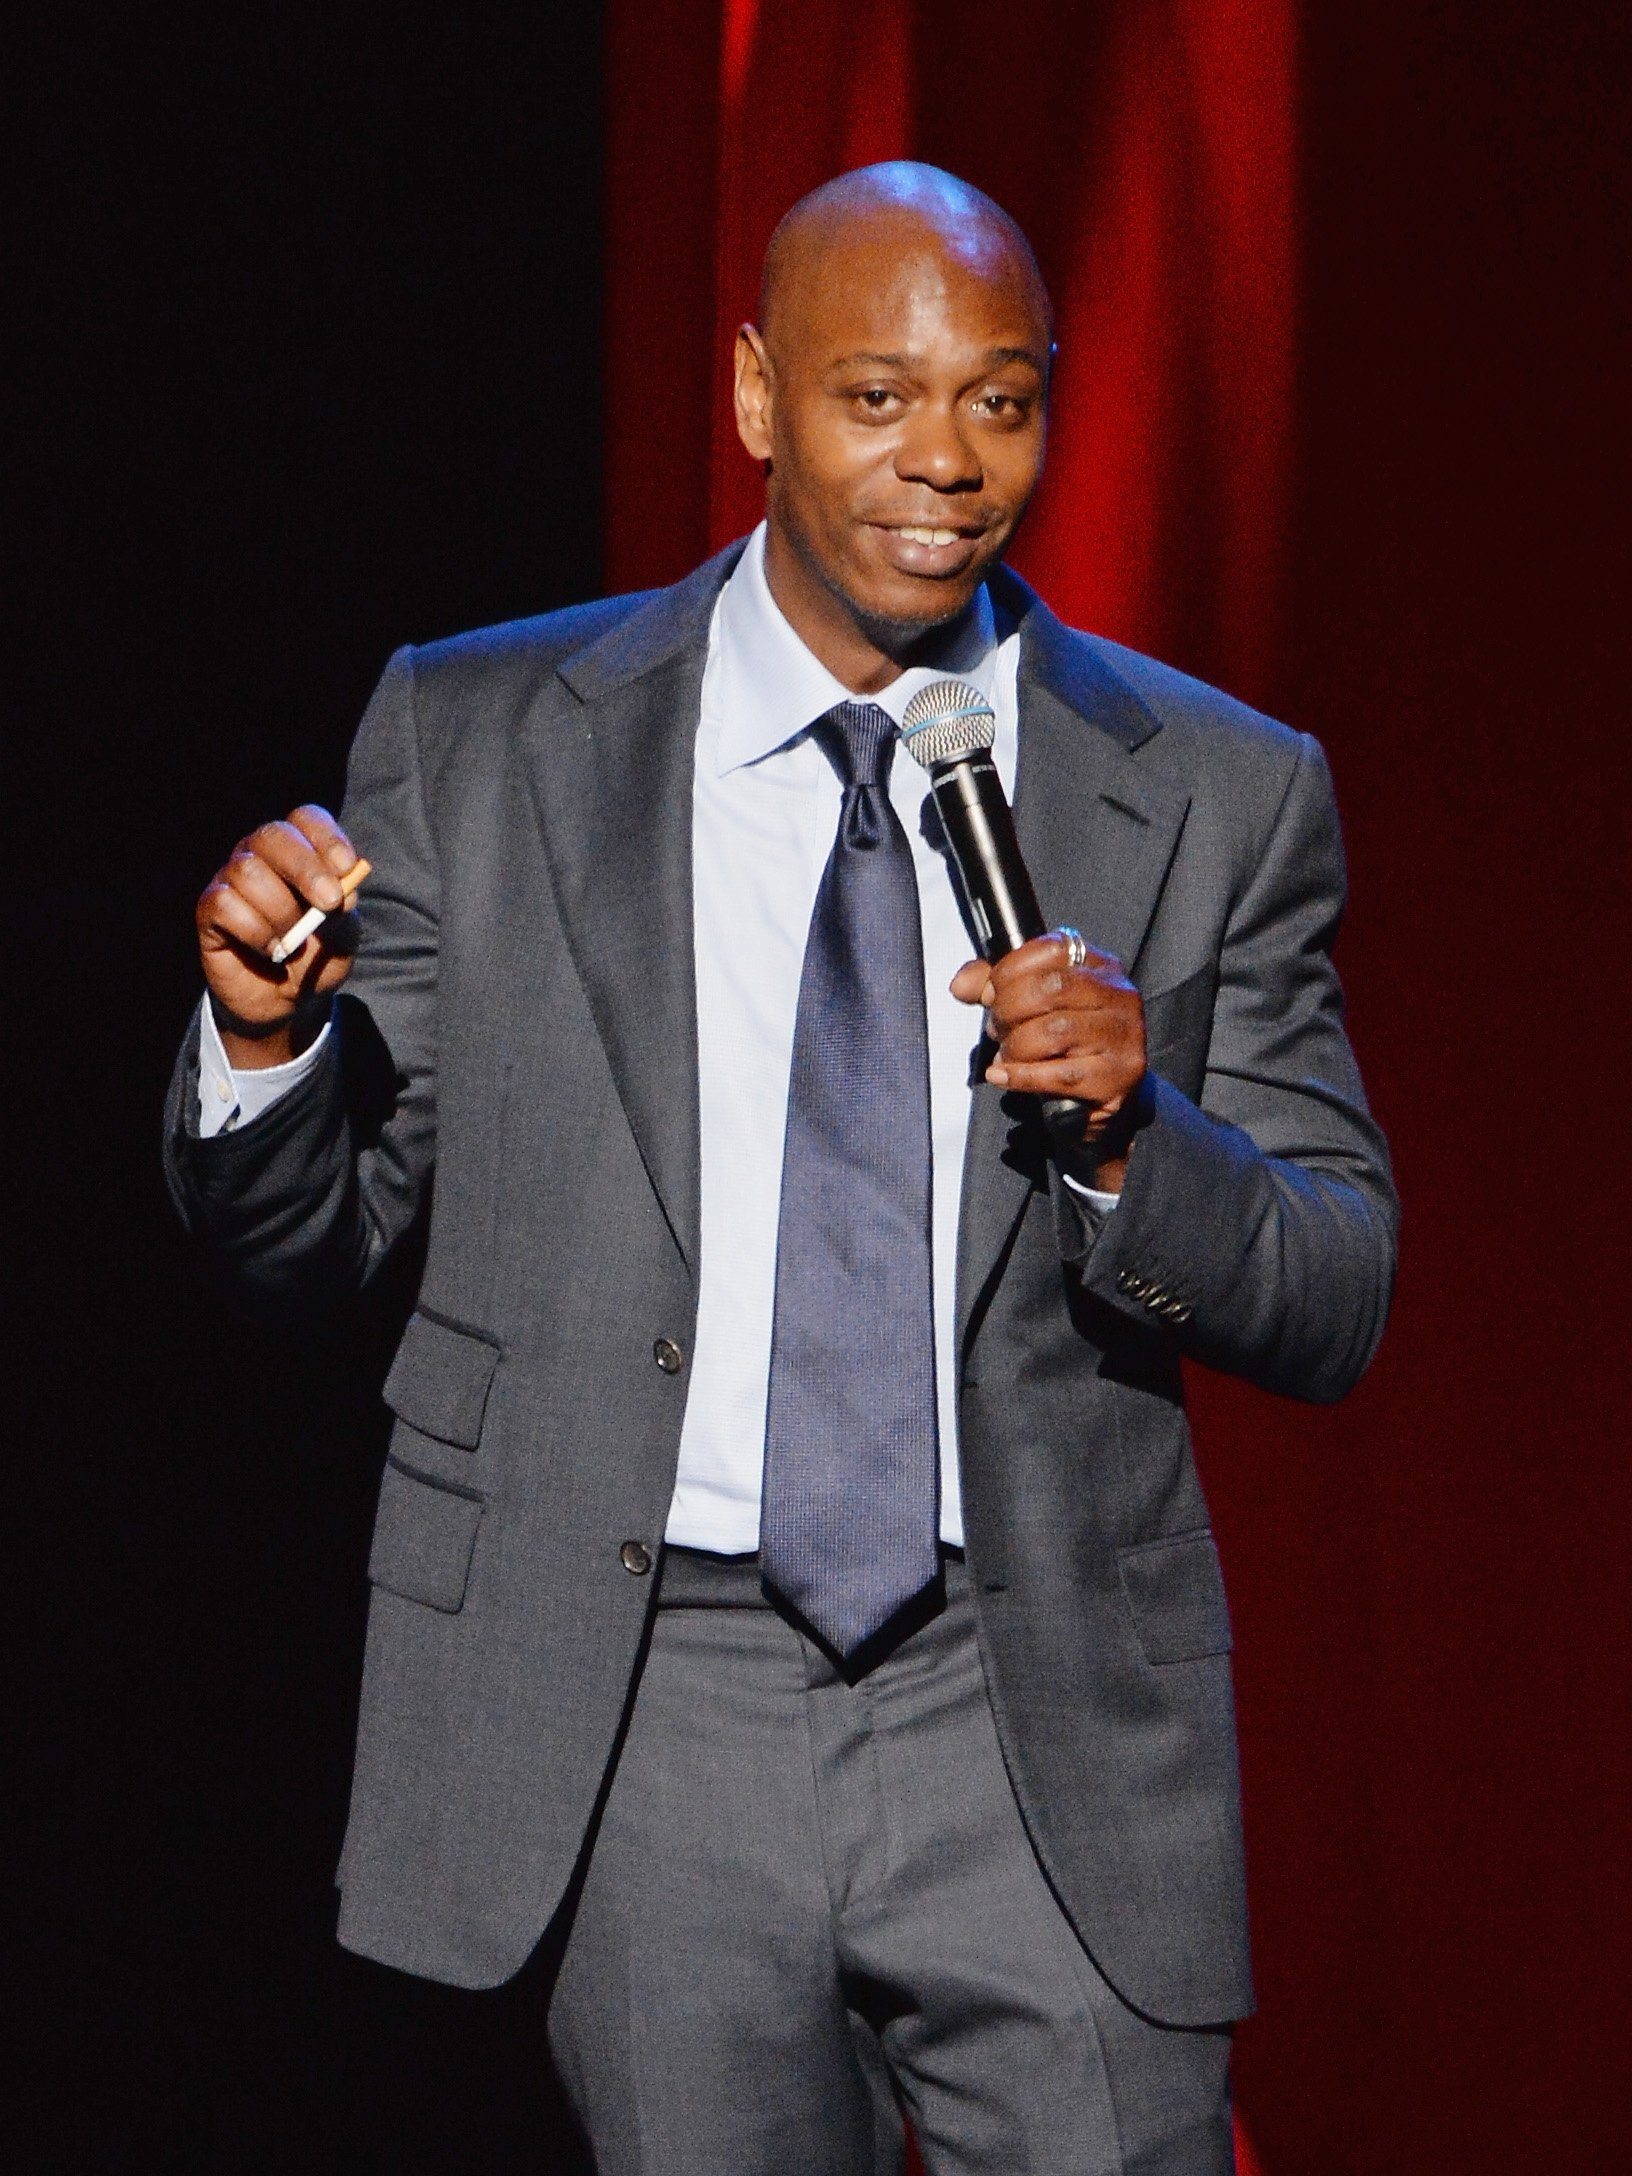 Dave Chappelle performs at Radio City Music Hall on June, 2014. | Photo: GettyImages/Global Images of Ukraine